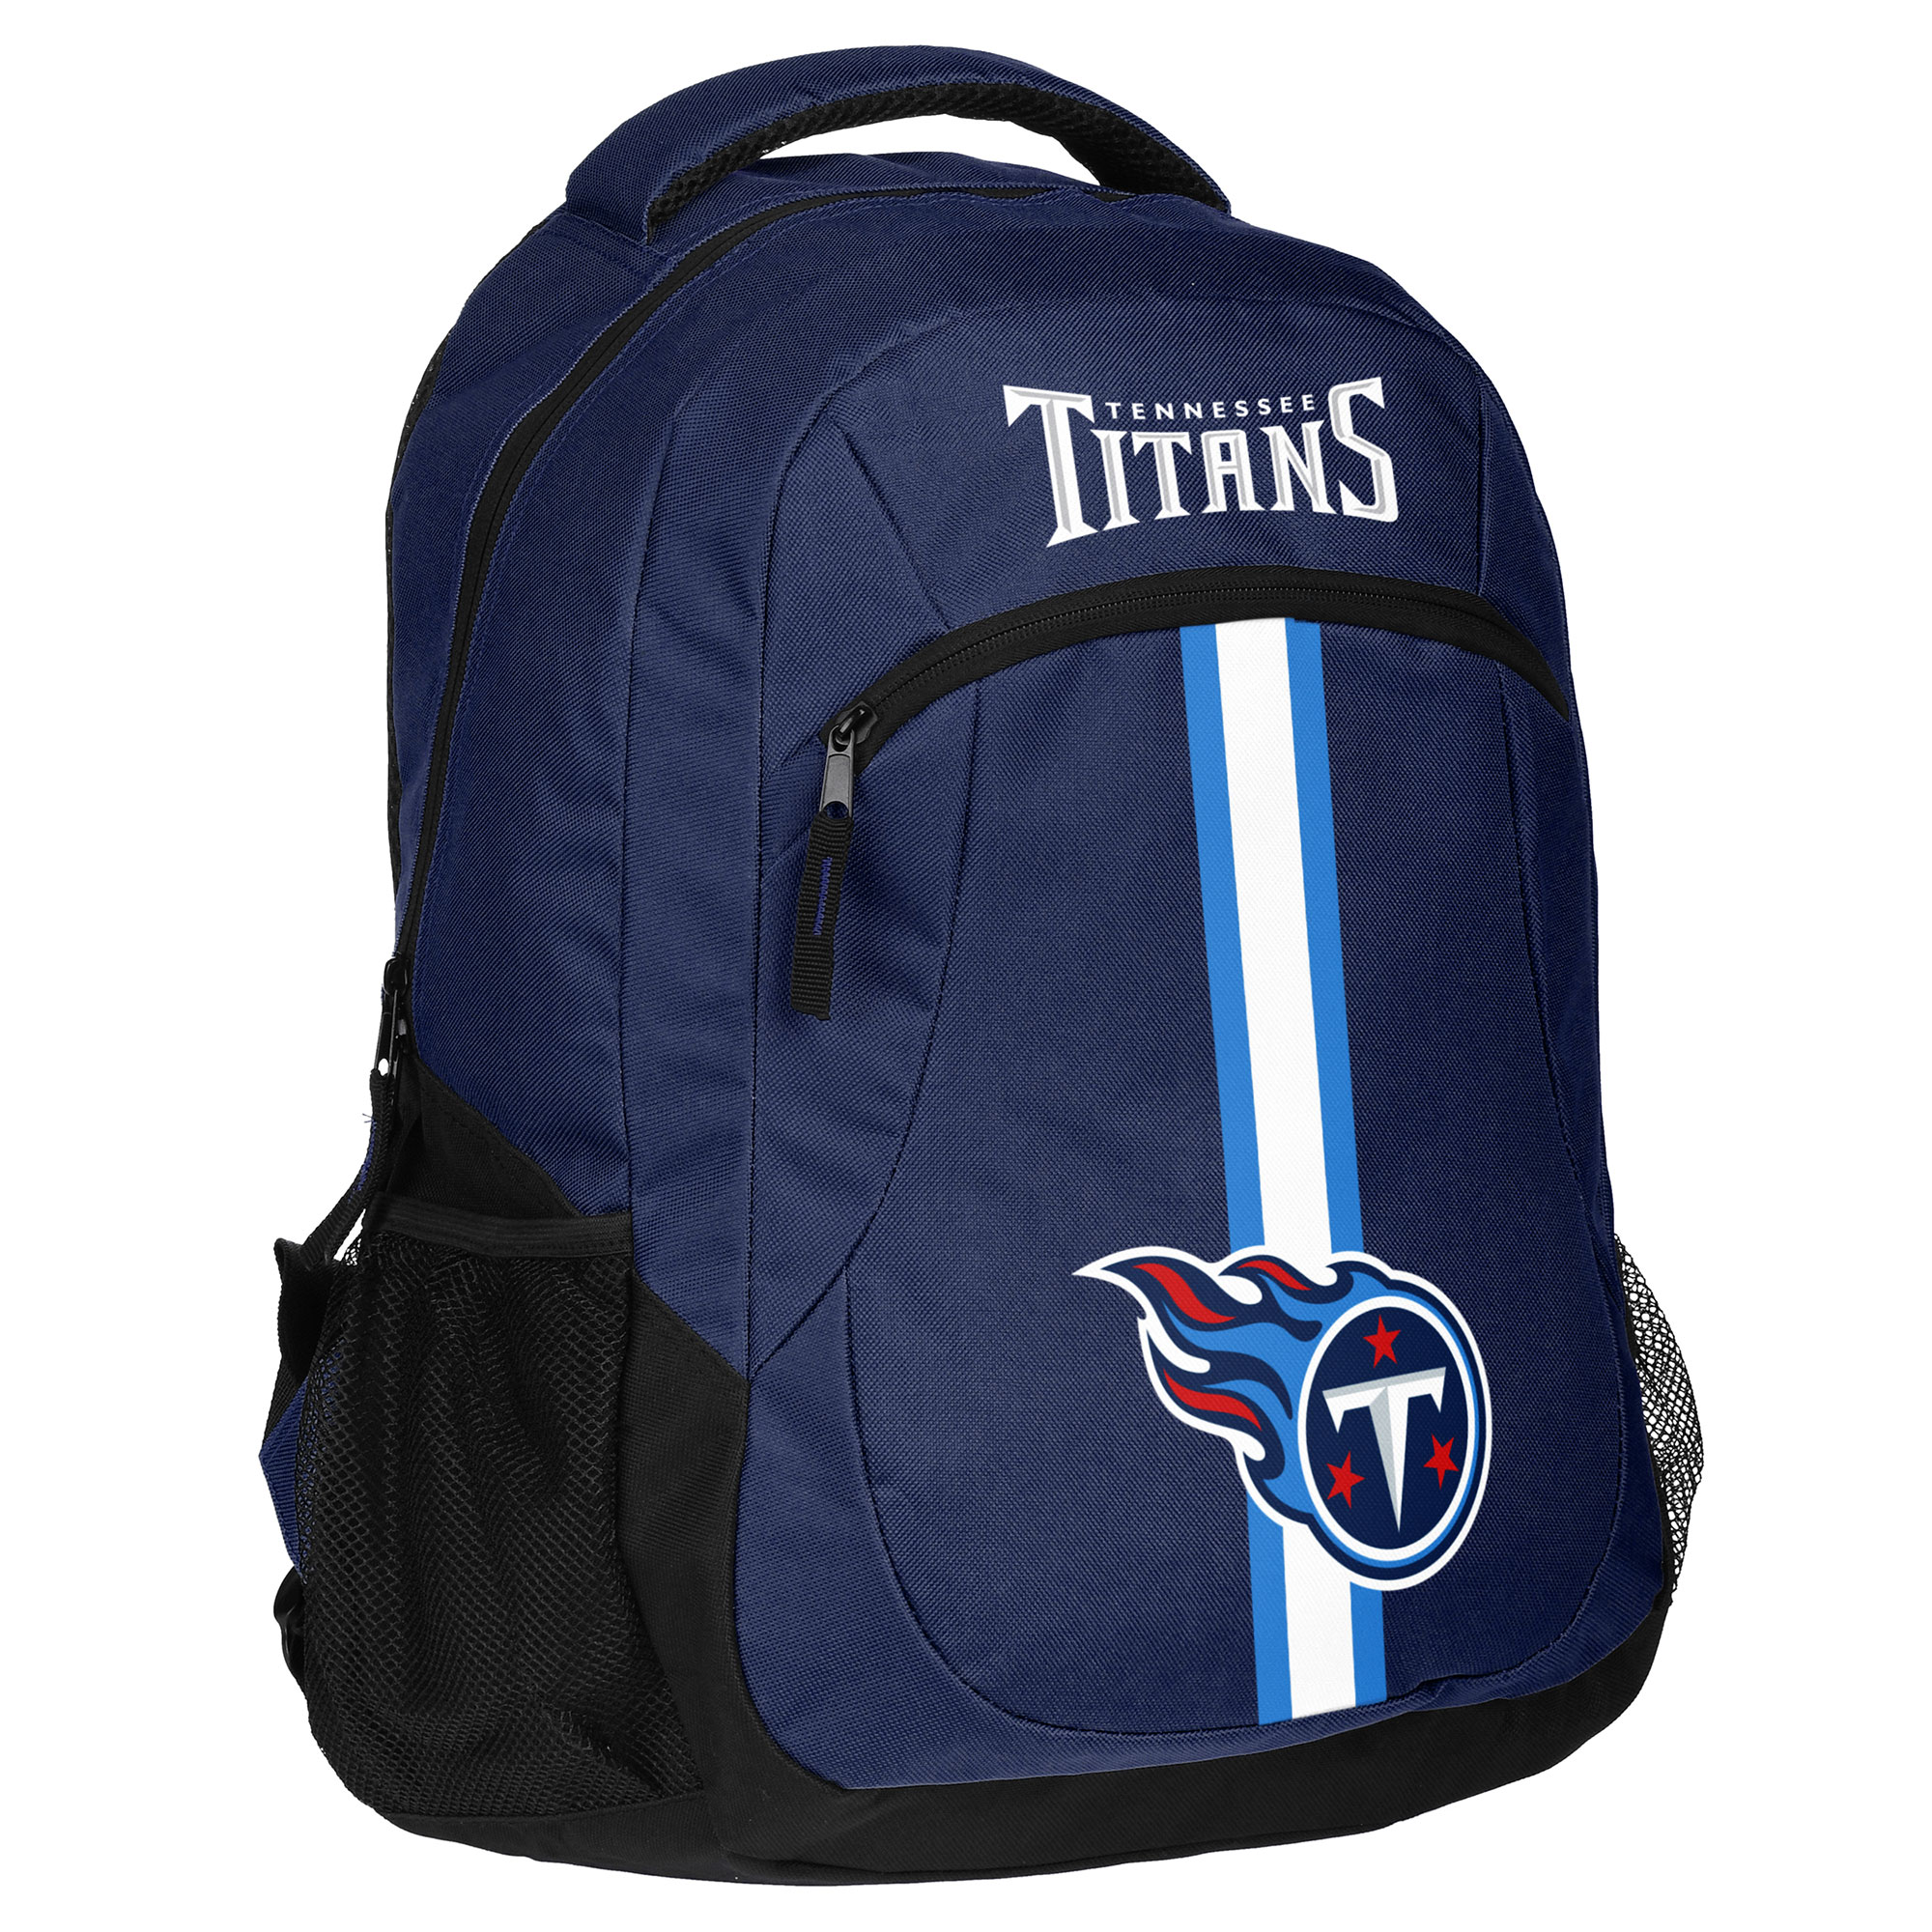 Tennessee Titans Back Pack